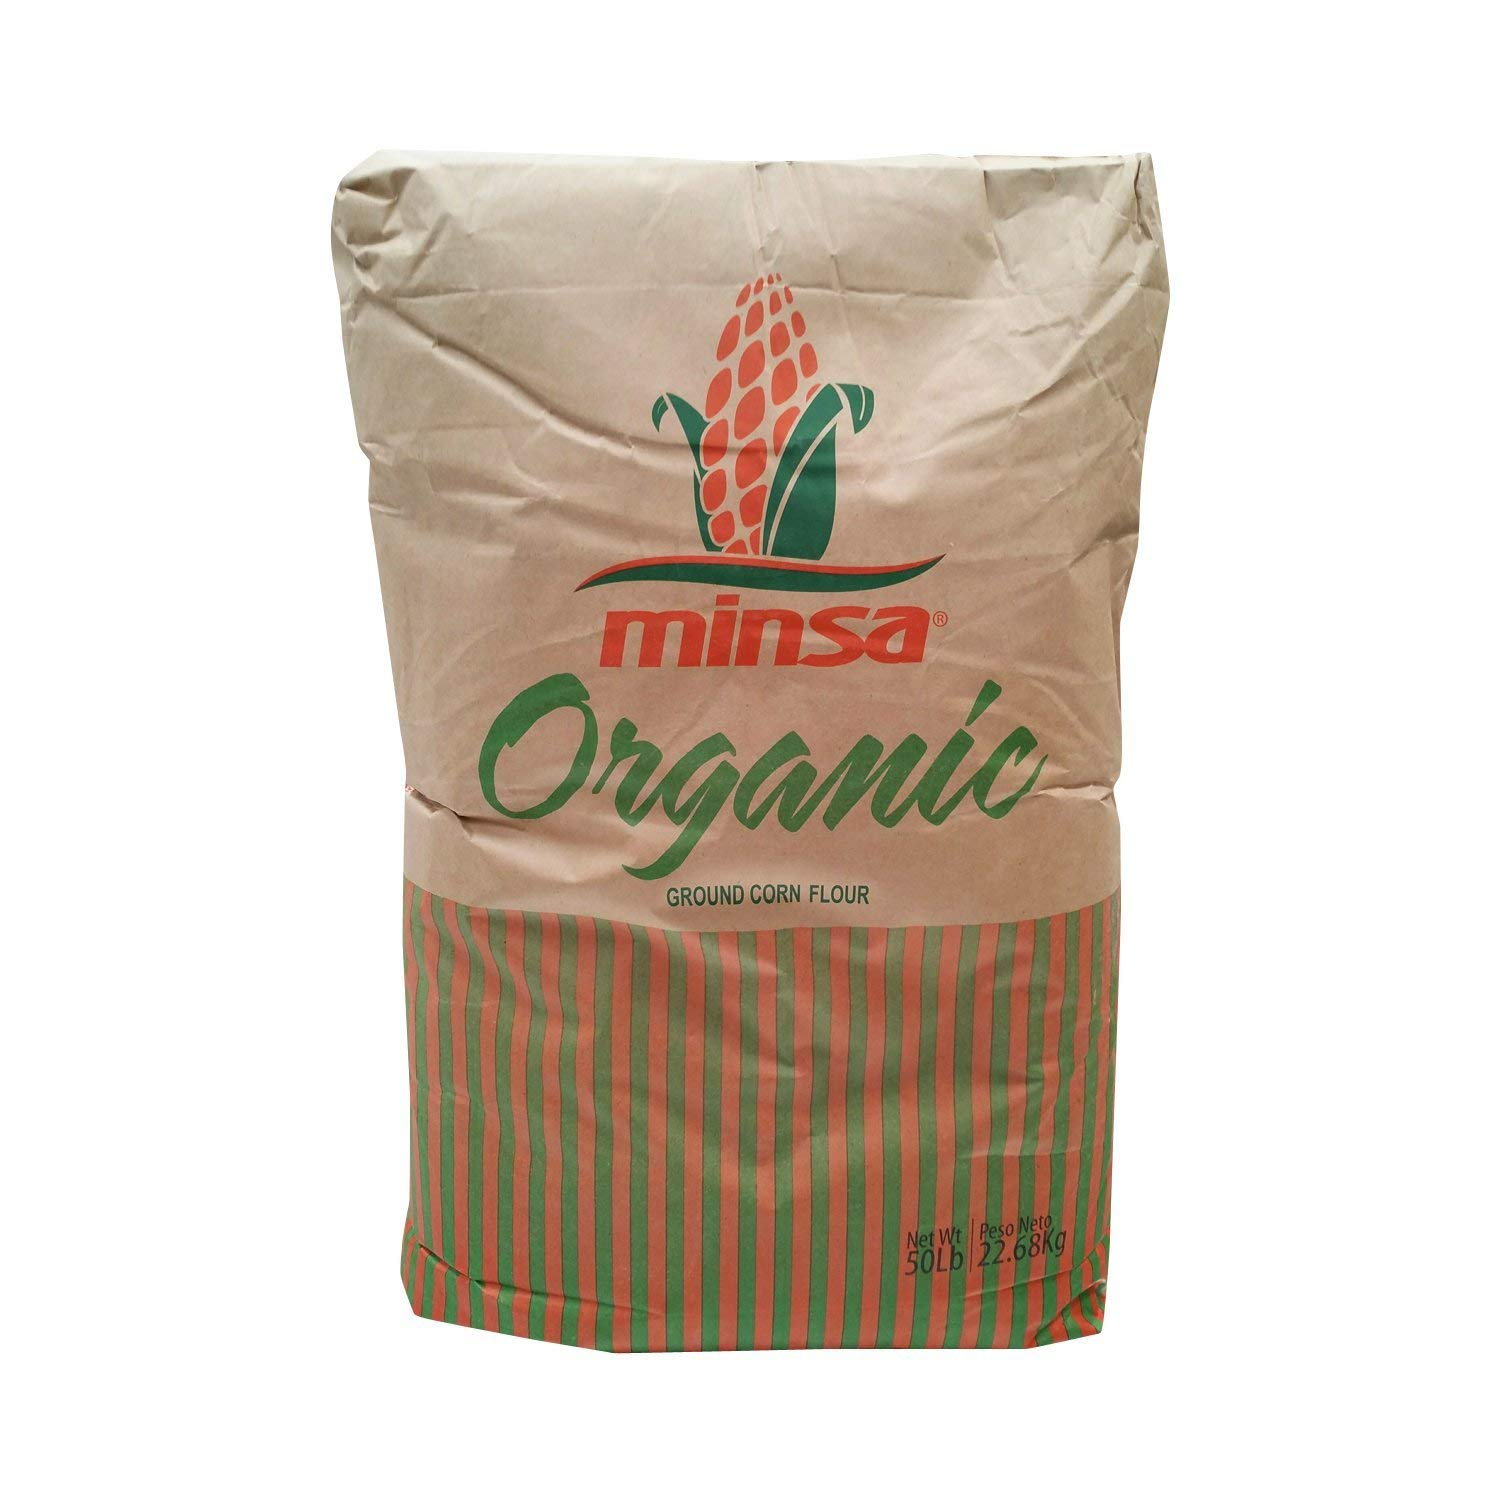 Gold Mine White Corn Masa Harina - USDA Organic - Macrobiotic, Vegan, Kosher and Gluten Free Flour for Healthy Mexican Dishes - 50 LBS by Gold Mine Natural Food Co.